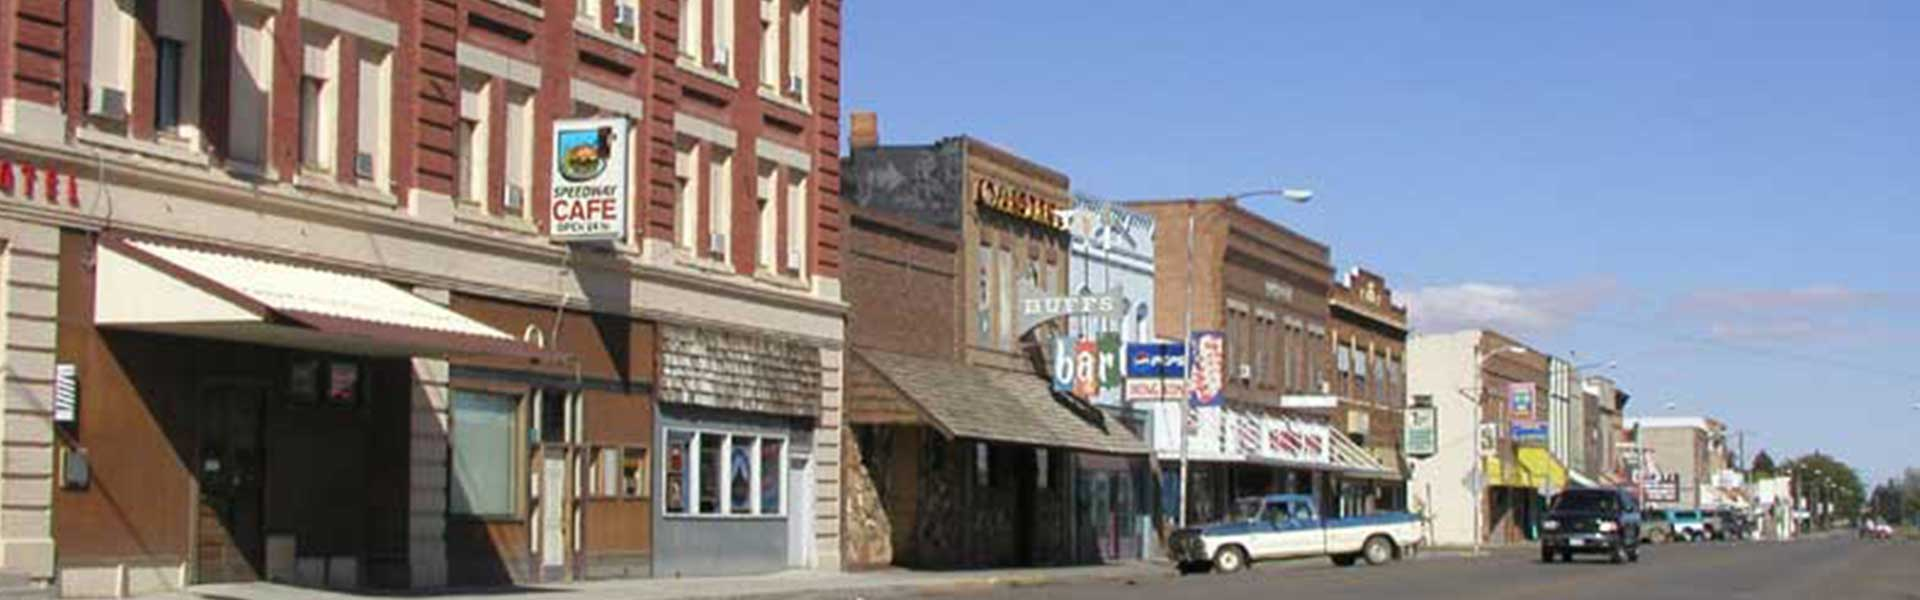 The City of Forsyth Montana | The Official Web Site for the